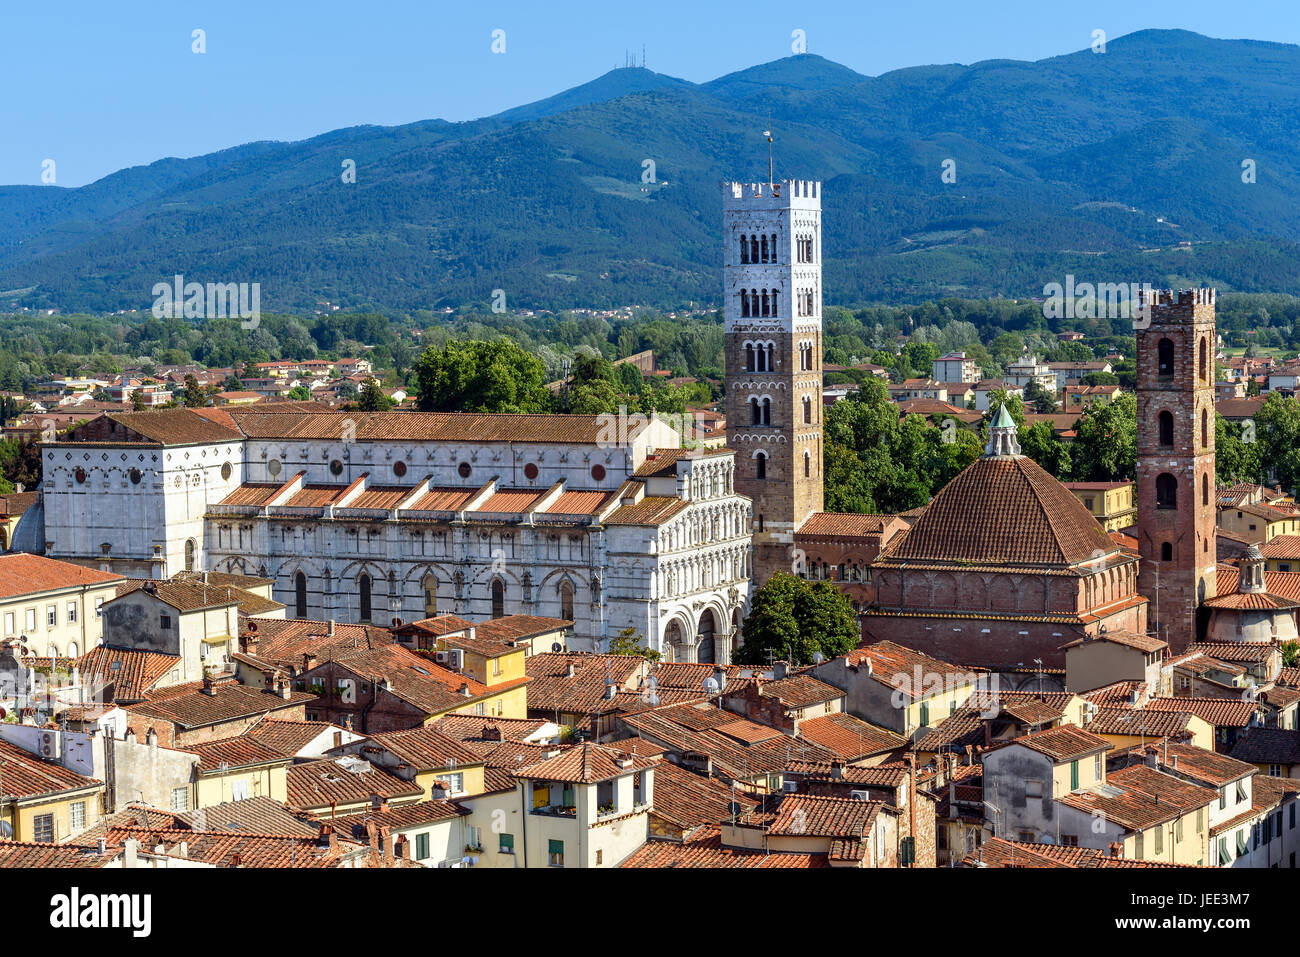 medieval town of Lucca with St. Martin cathedral, tuscany, italy - Stock Image